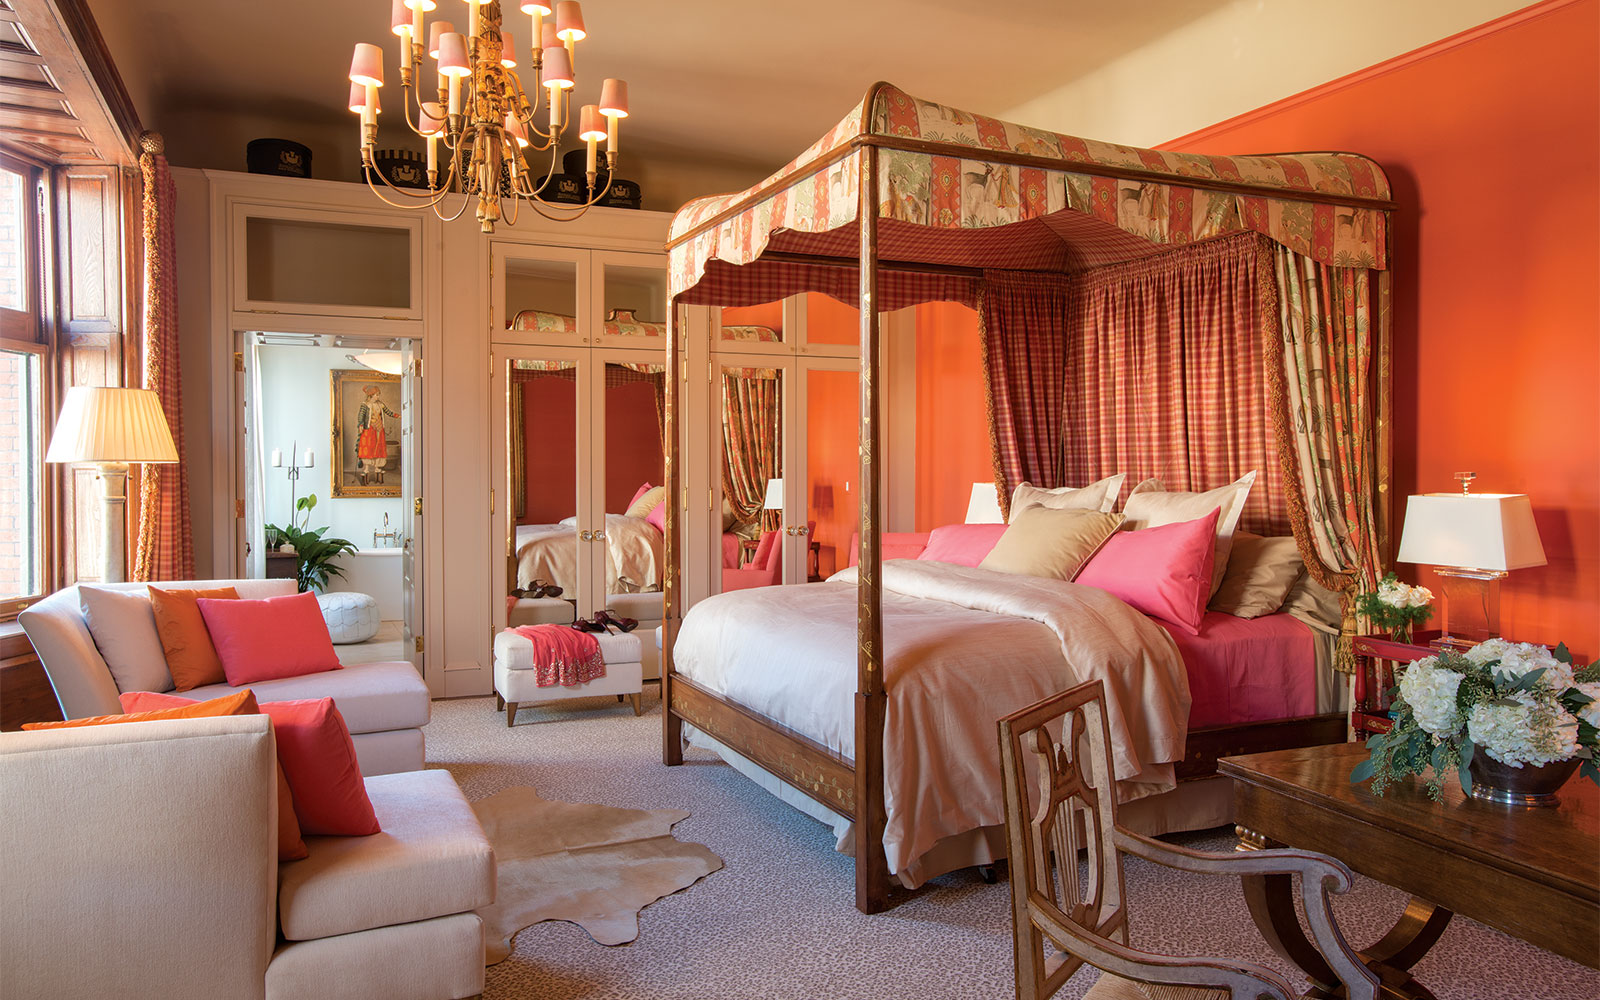 11 Intimate East Coast Inns to While Away Your Summer: The Ivy Hotel in Baltimore, Maryland